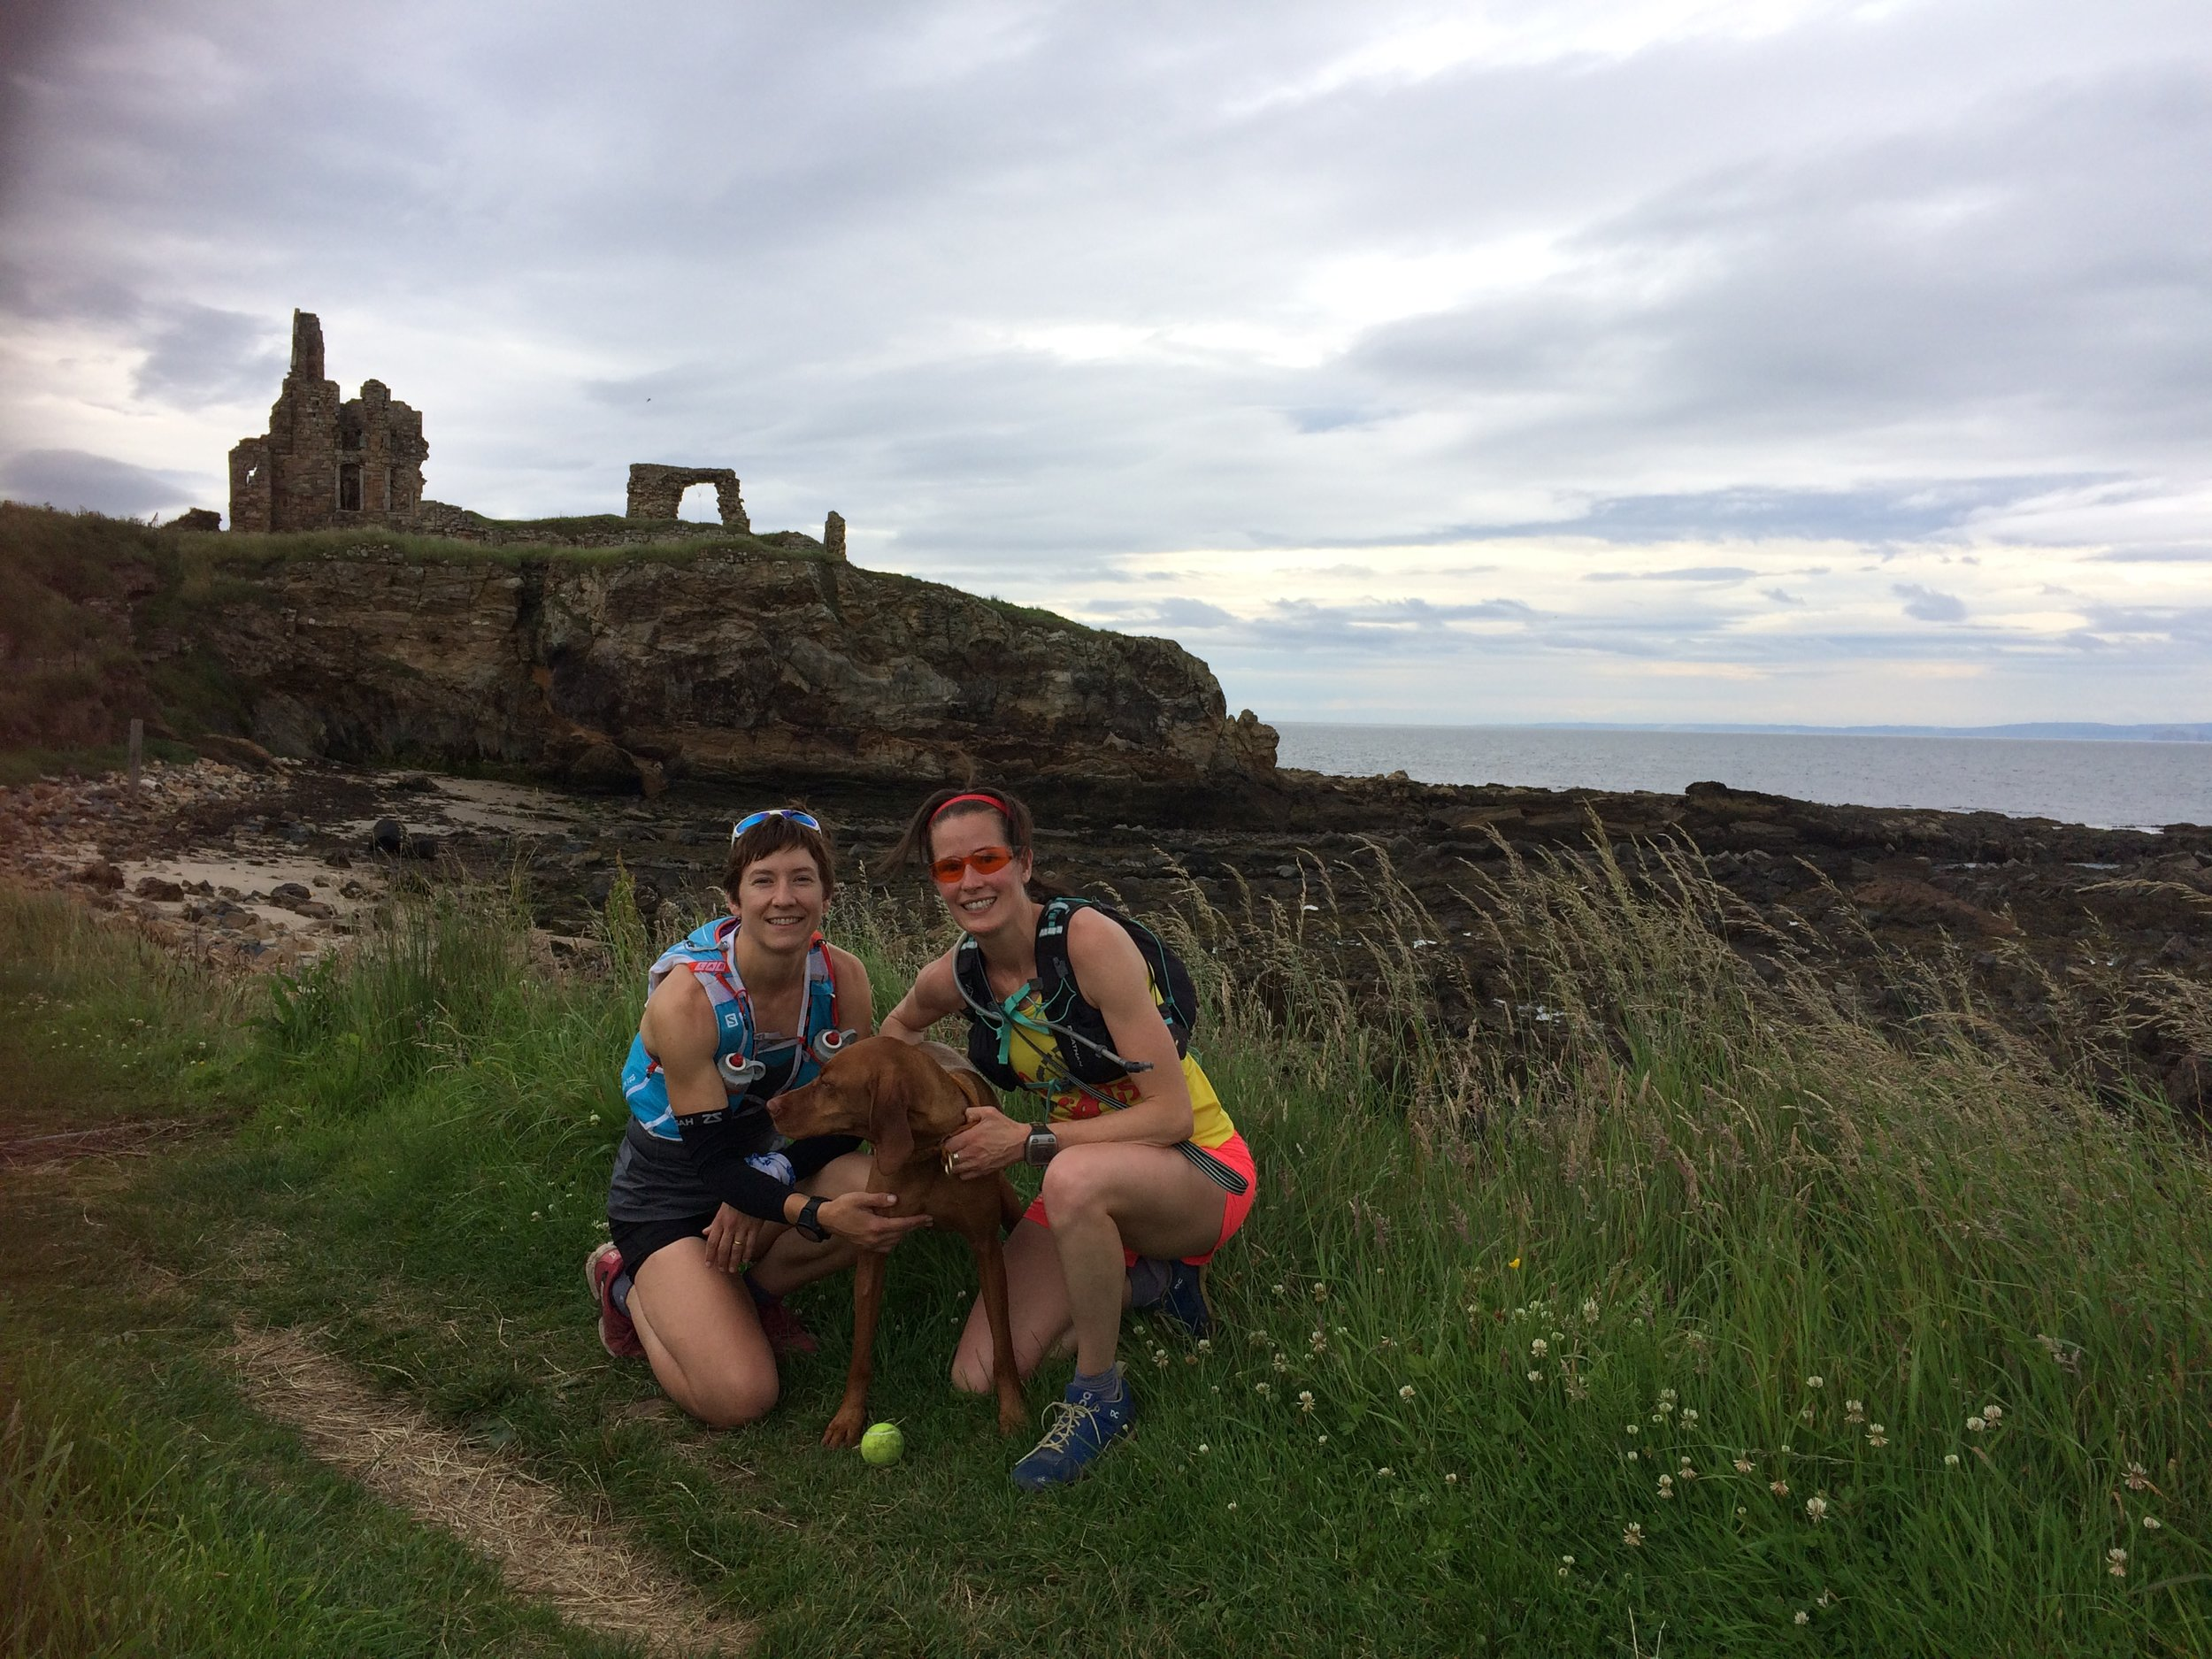 The running trio, with Newark Castle in the background